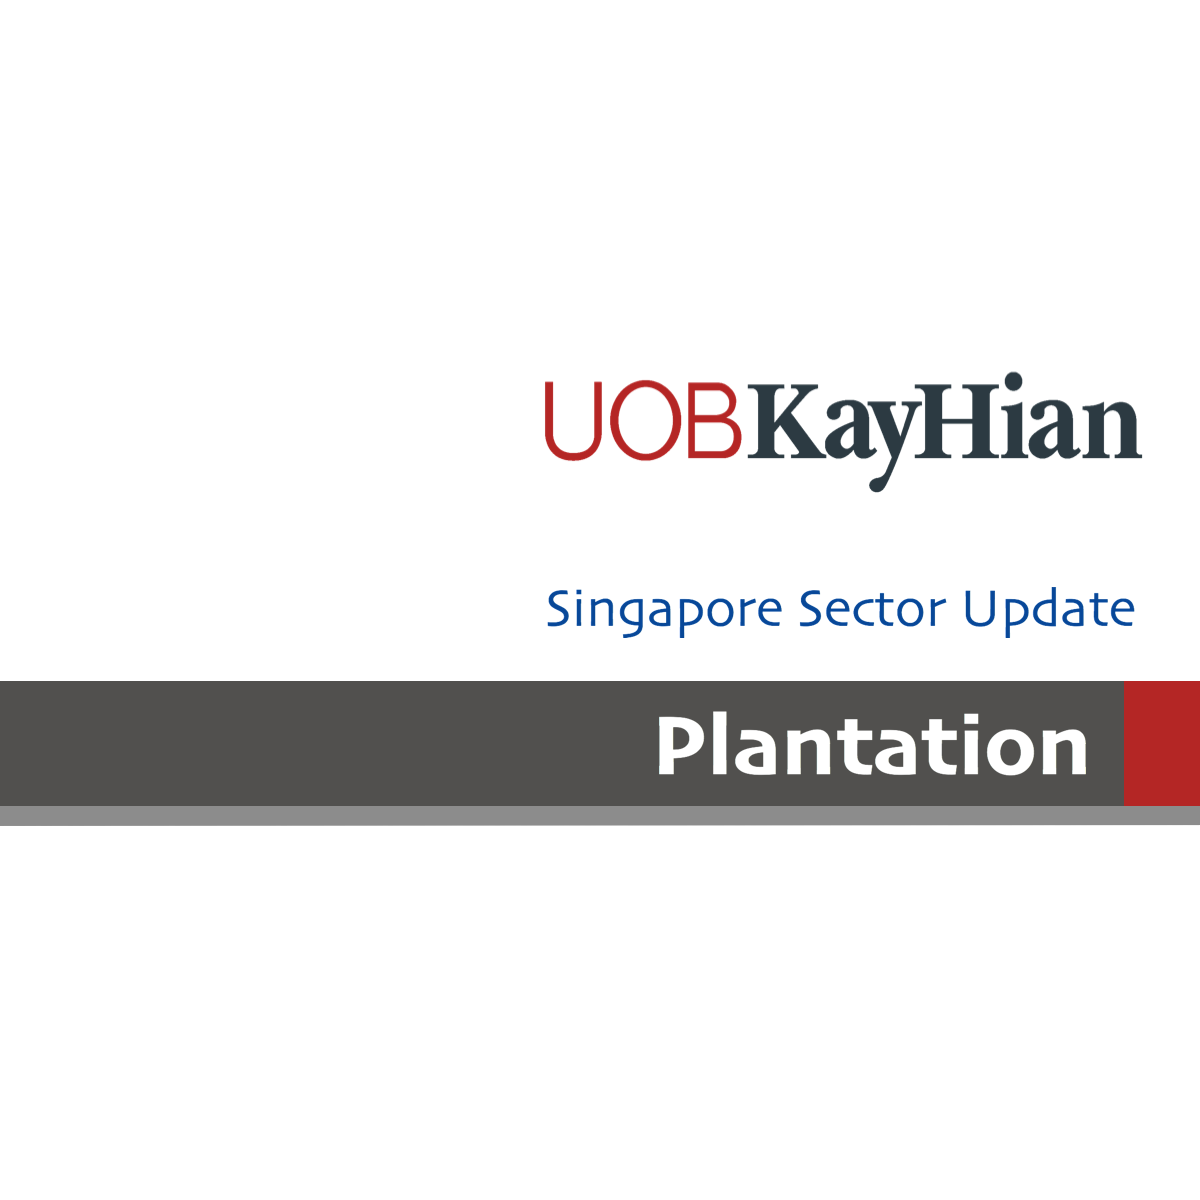 Plantation - UOB Kay Hian 2017-06-22: Supply Outweighs Demand; Downgrade To MARKET WEIGHT